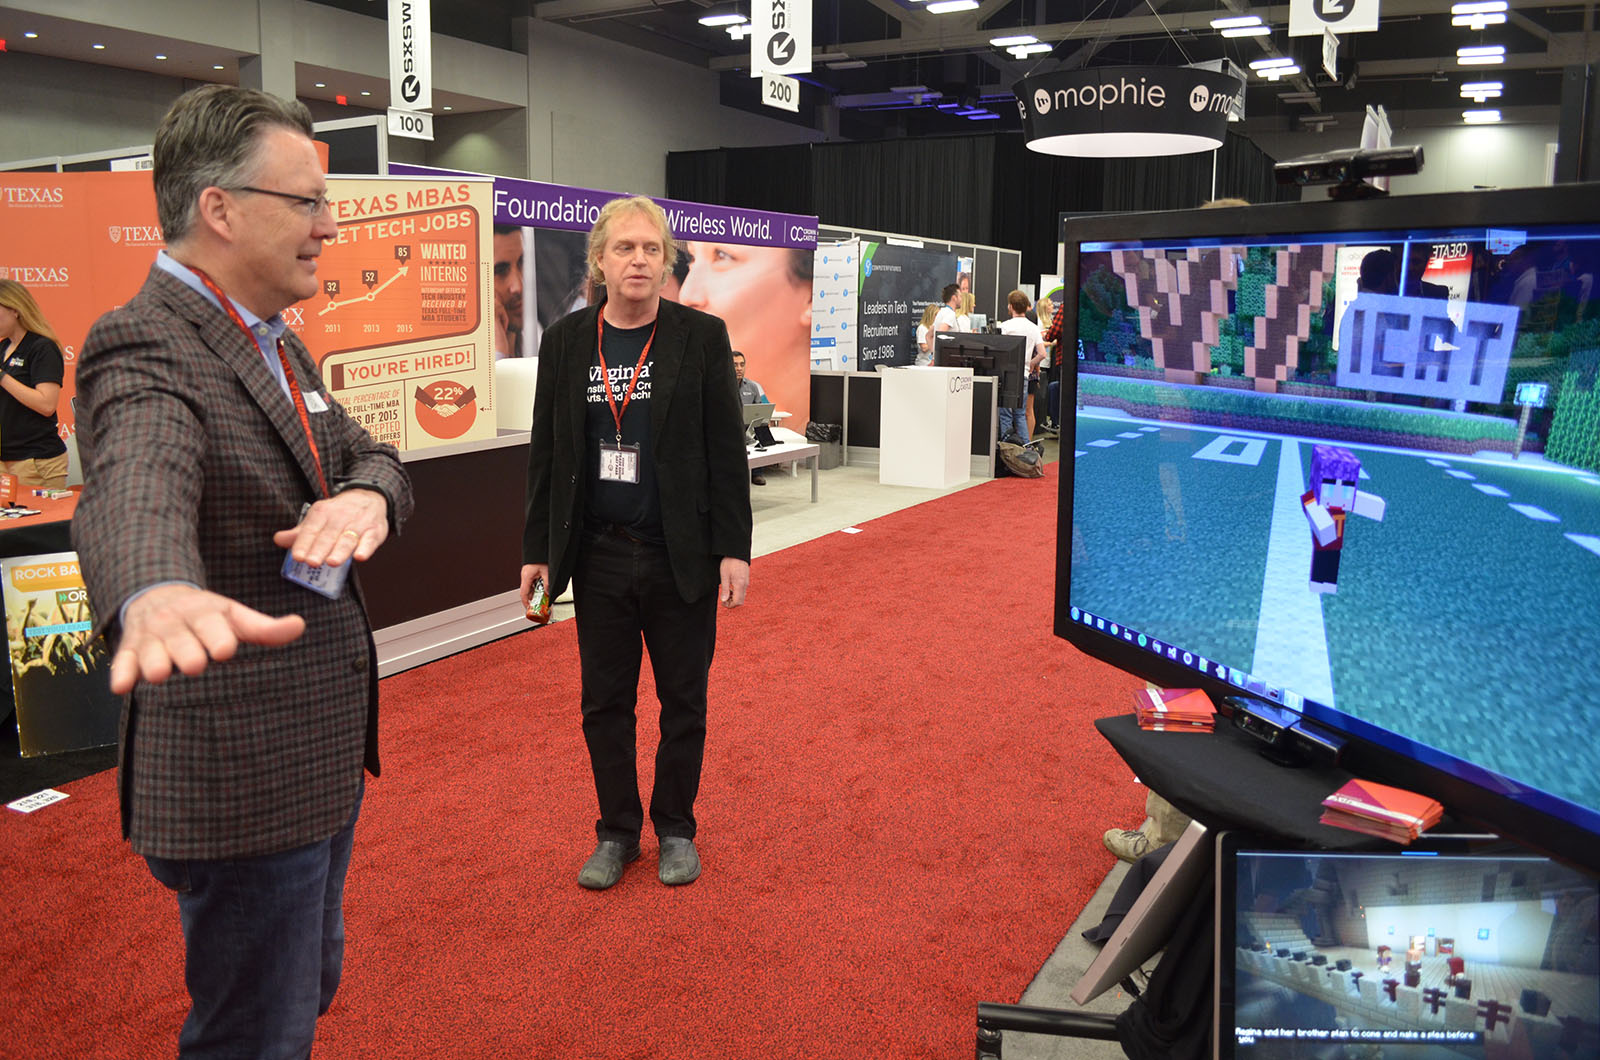 Virginia Tech President Sands explores Mirrorcraft at SXSW 2016